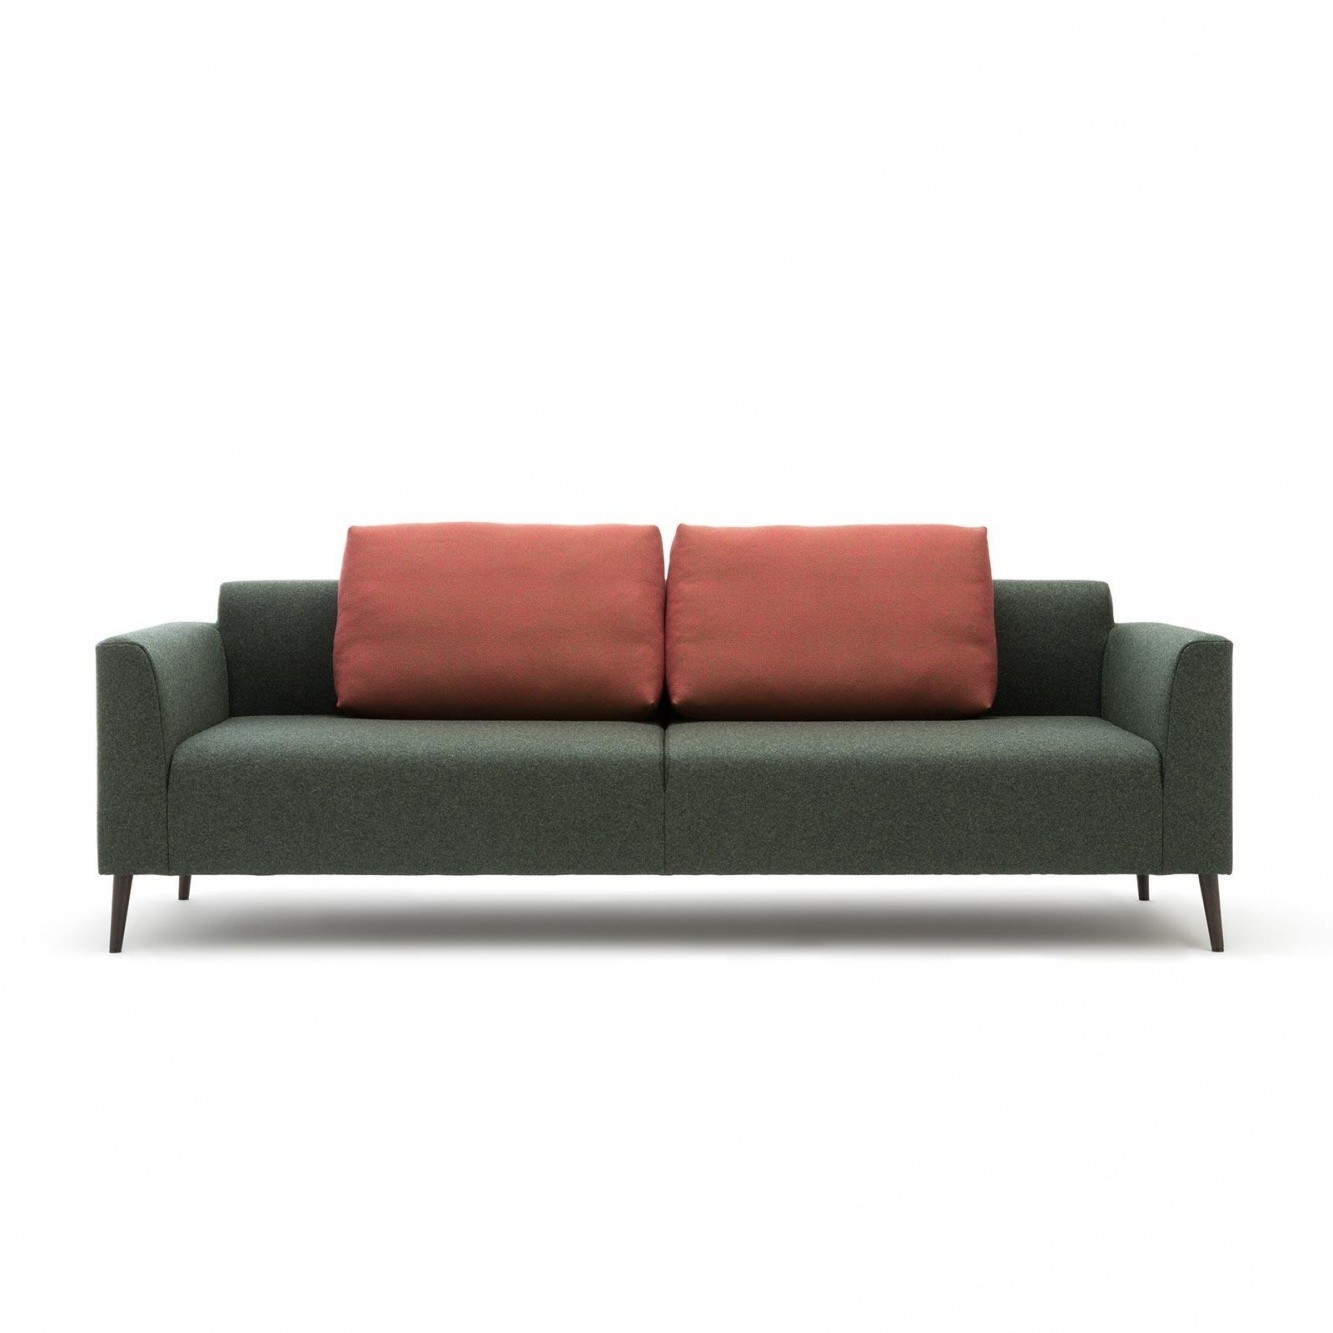 Rolf Benz Eckcouch Freistil 162 3 Seater Sofa